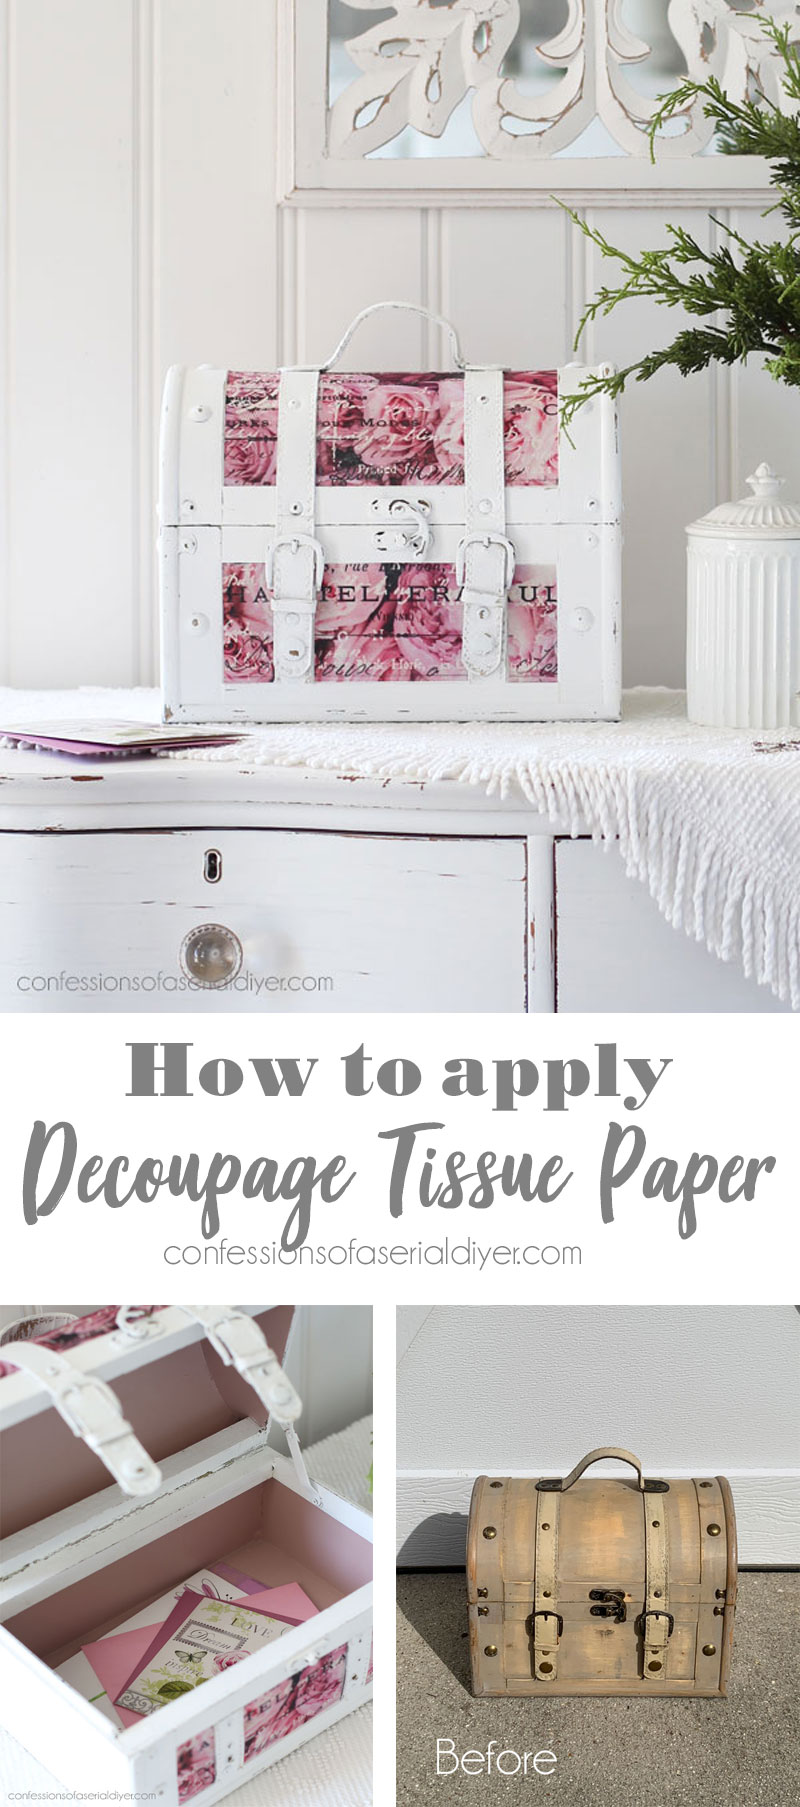 How to Apply Decoupage Tissue Paper